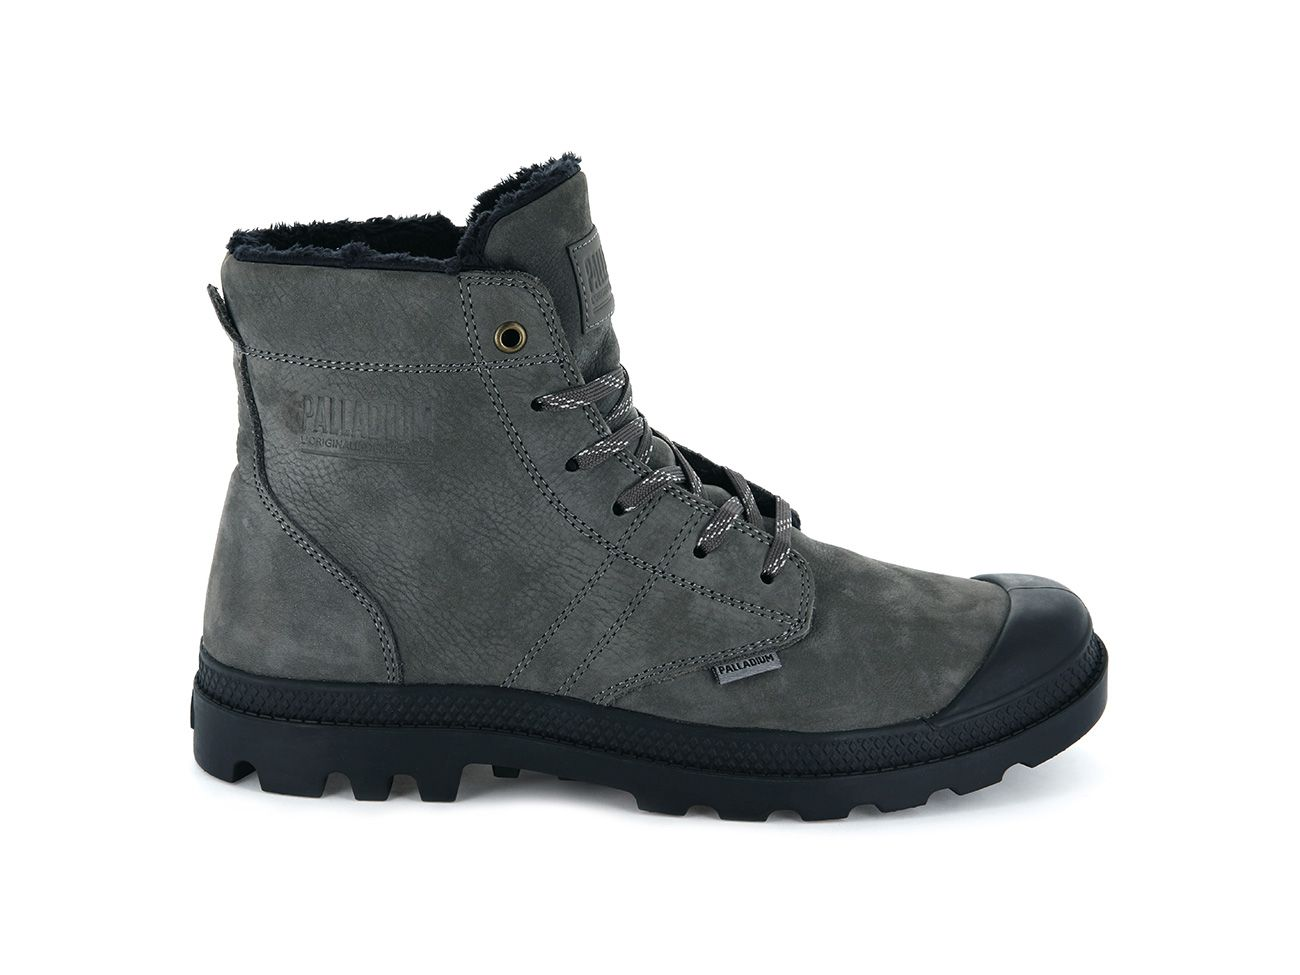 Palladium Pallabrousse LTH S Leather in Dk Gull Gray/Anthracite